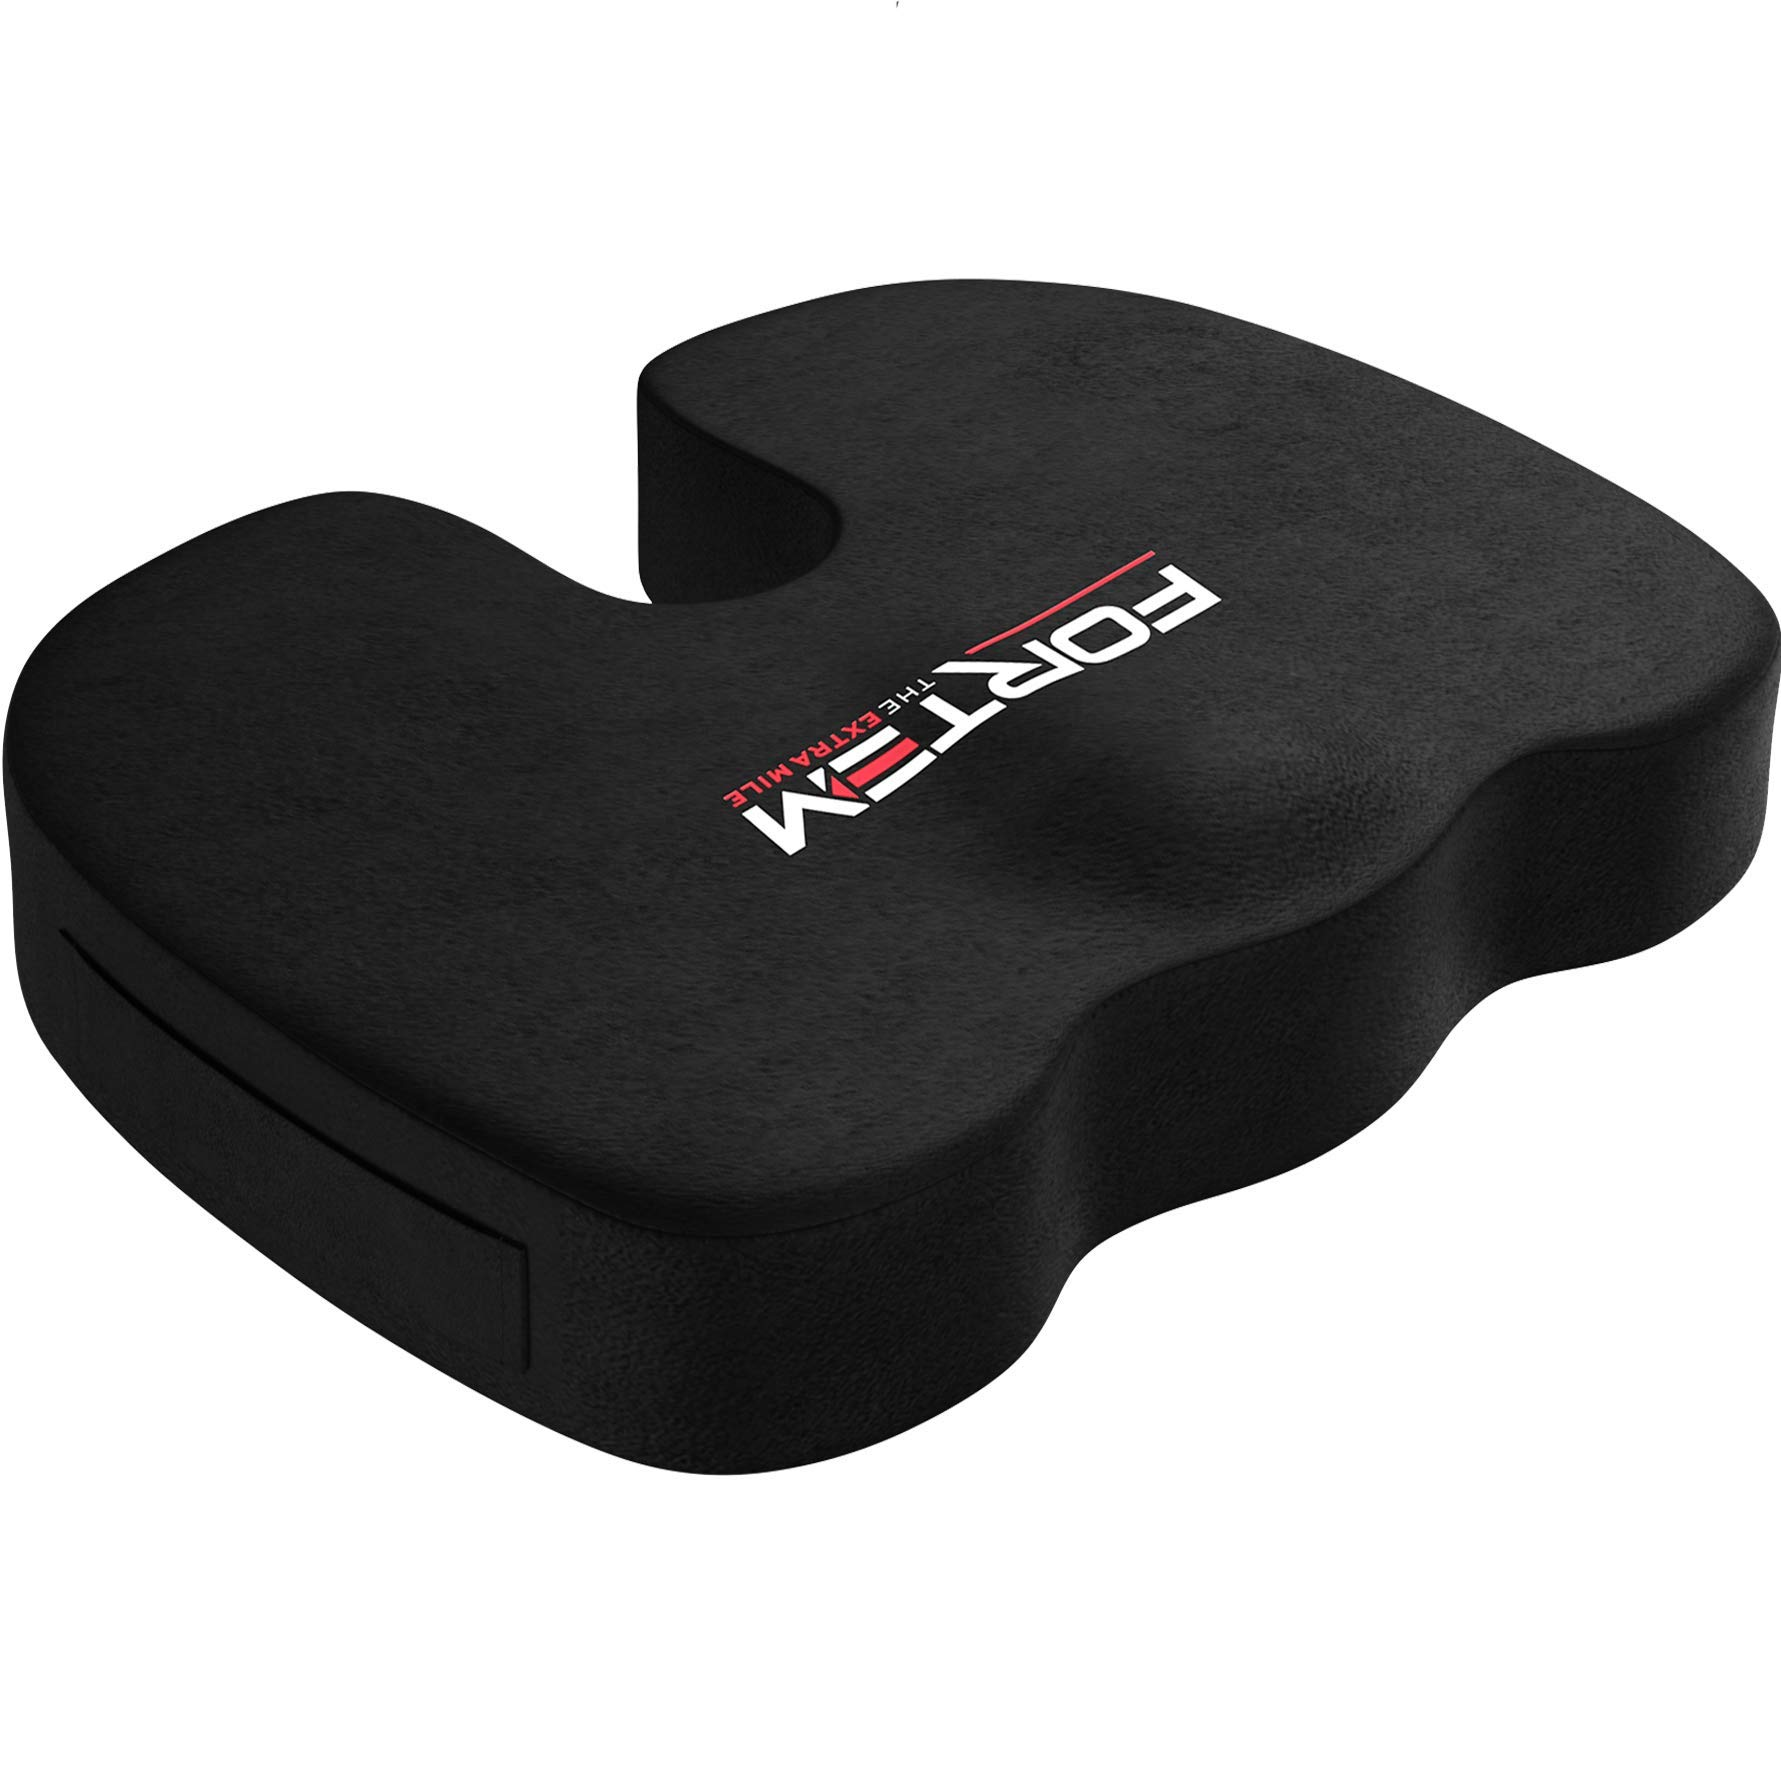 FORTEM Seat Cushion Pillow for Office Computer Chair, Car, Wheelchair, Memory Foam, Improves Posture, Non-Slip Bottom, Washable Cover (Black) by FORTEM